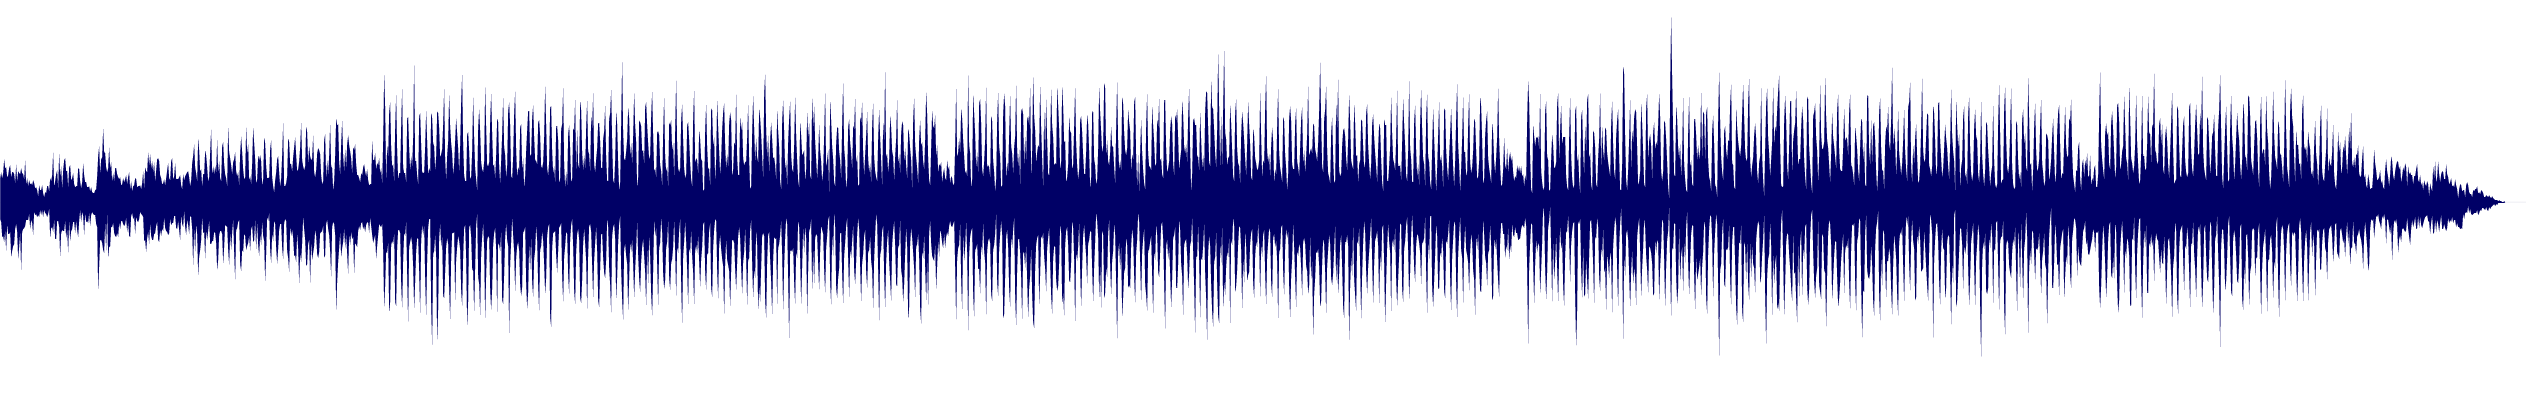 waveform of track #100349